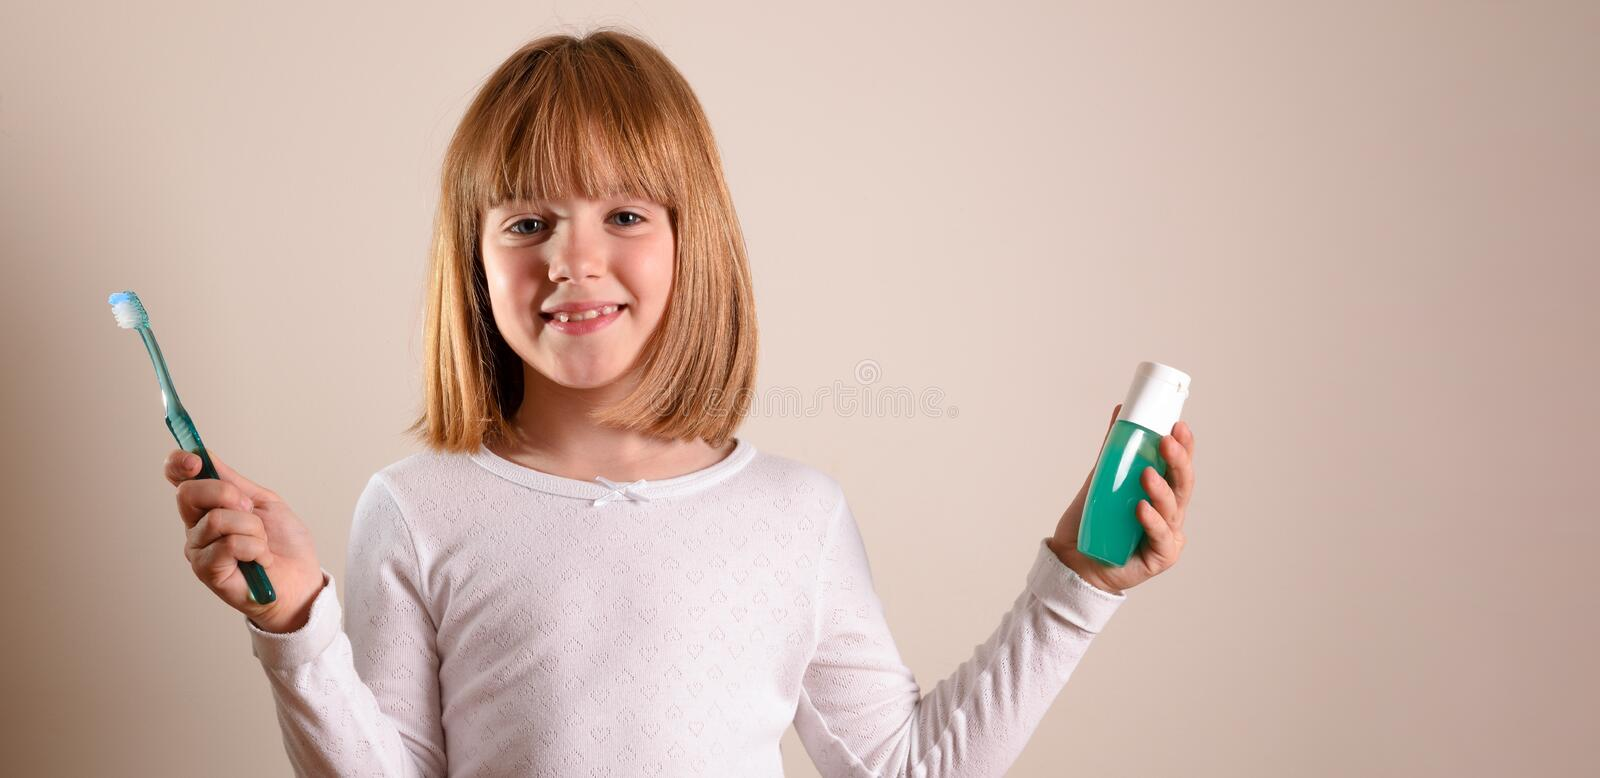 Smiling girl with toothbrush and toothpaste on isolated brown royalty free stock image